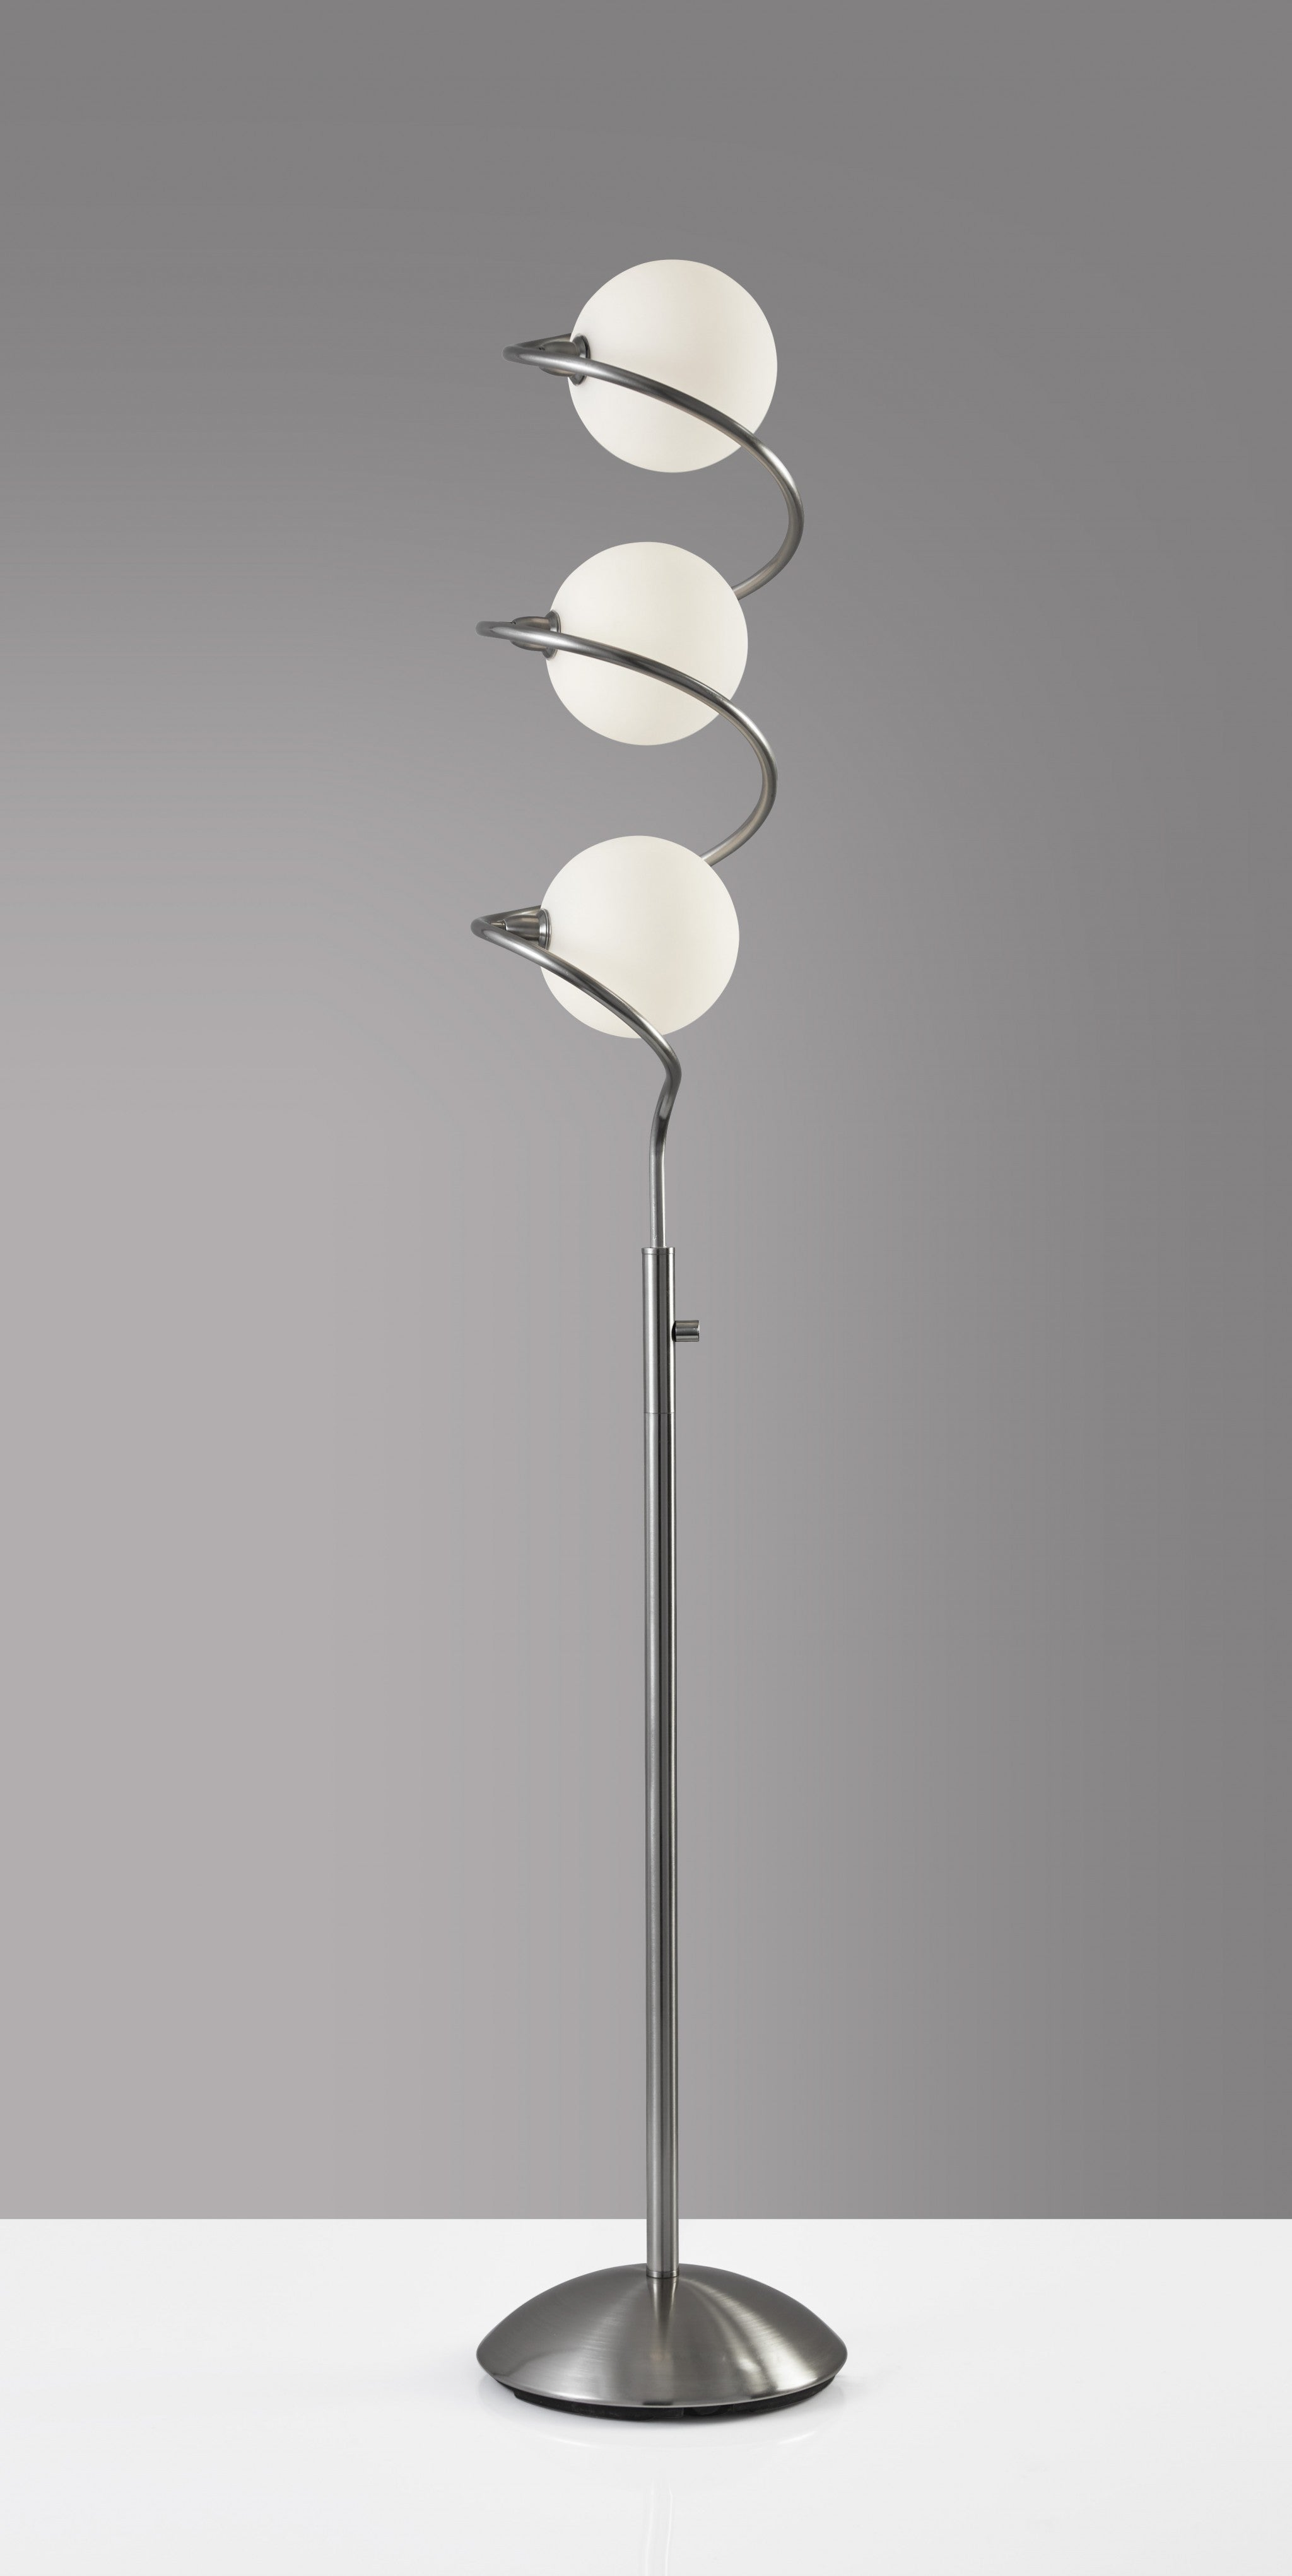 "11"" X 11"" X 64.5"" Brushed Steel Metal LED Floor Lamp"